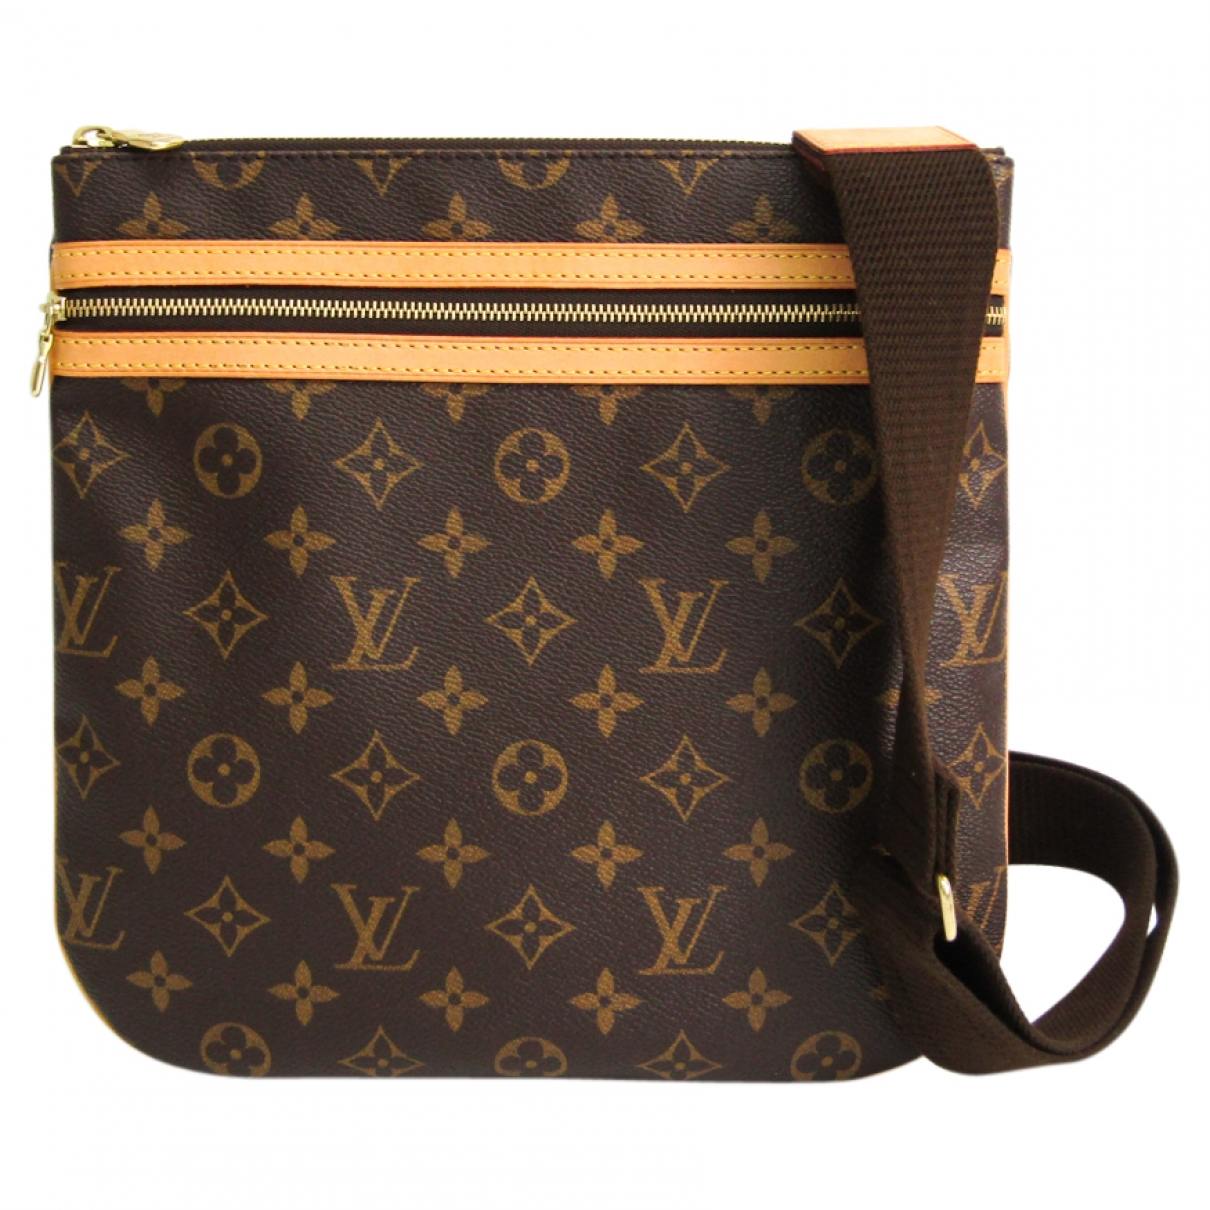 Louis Vuitton Bosphore Brown Cloth handbag for Women \N